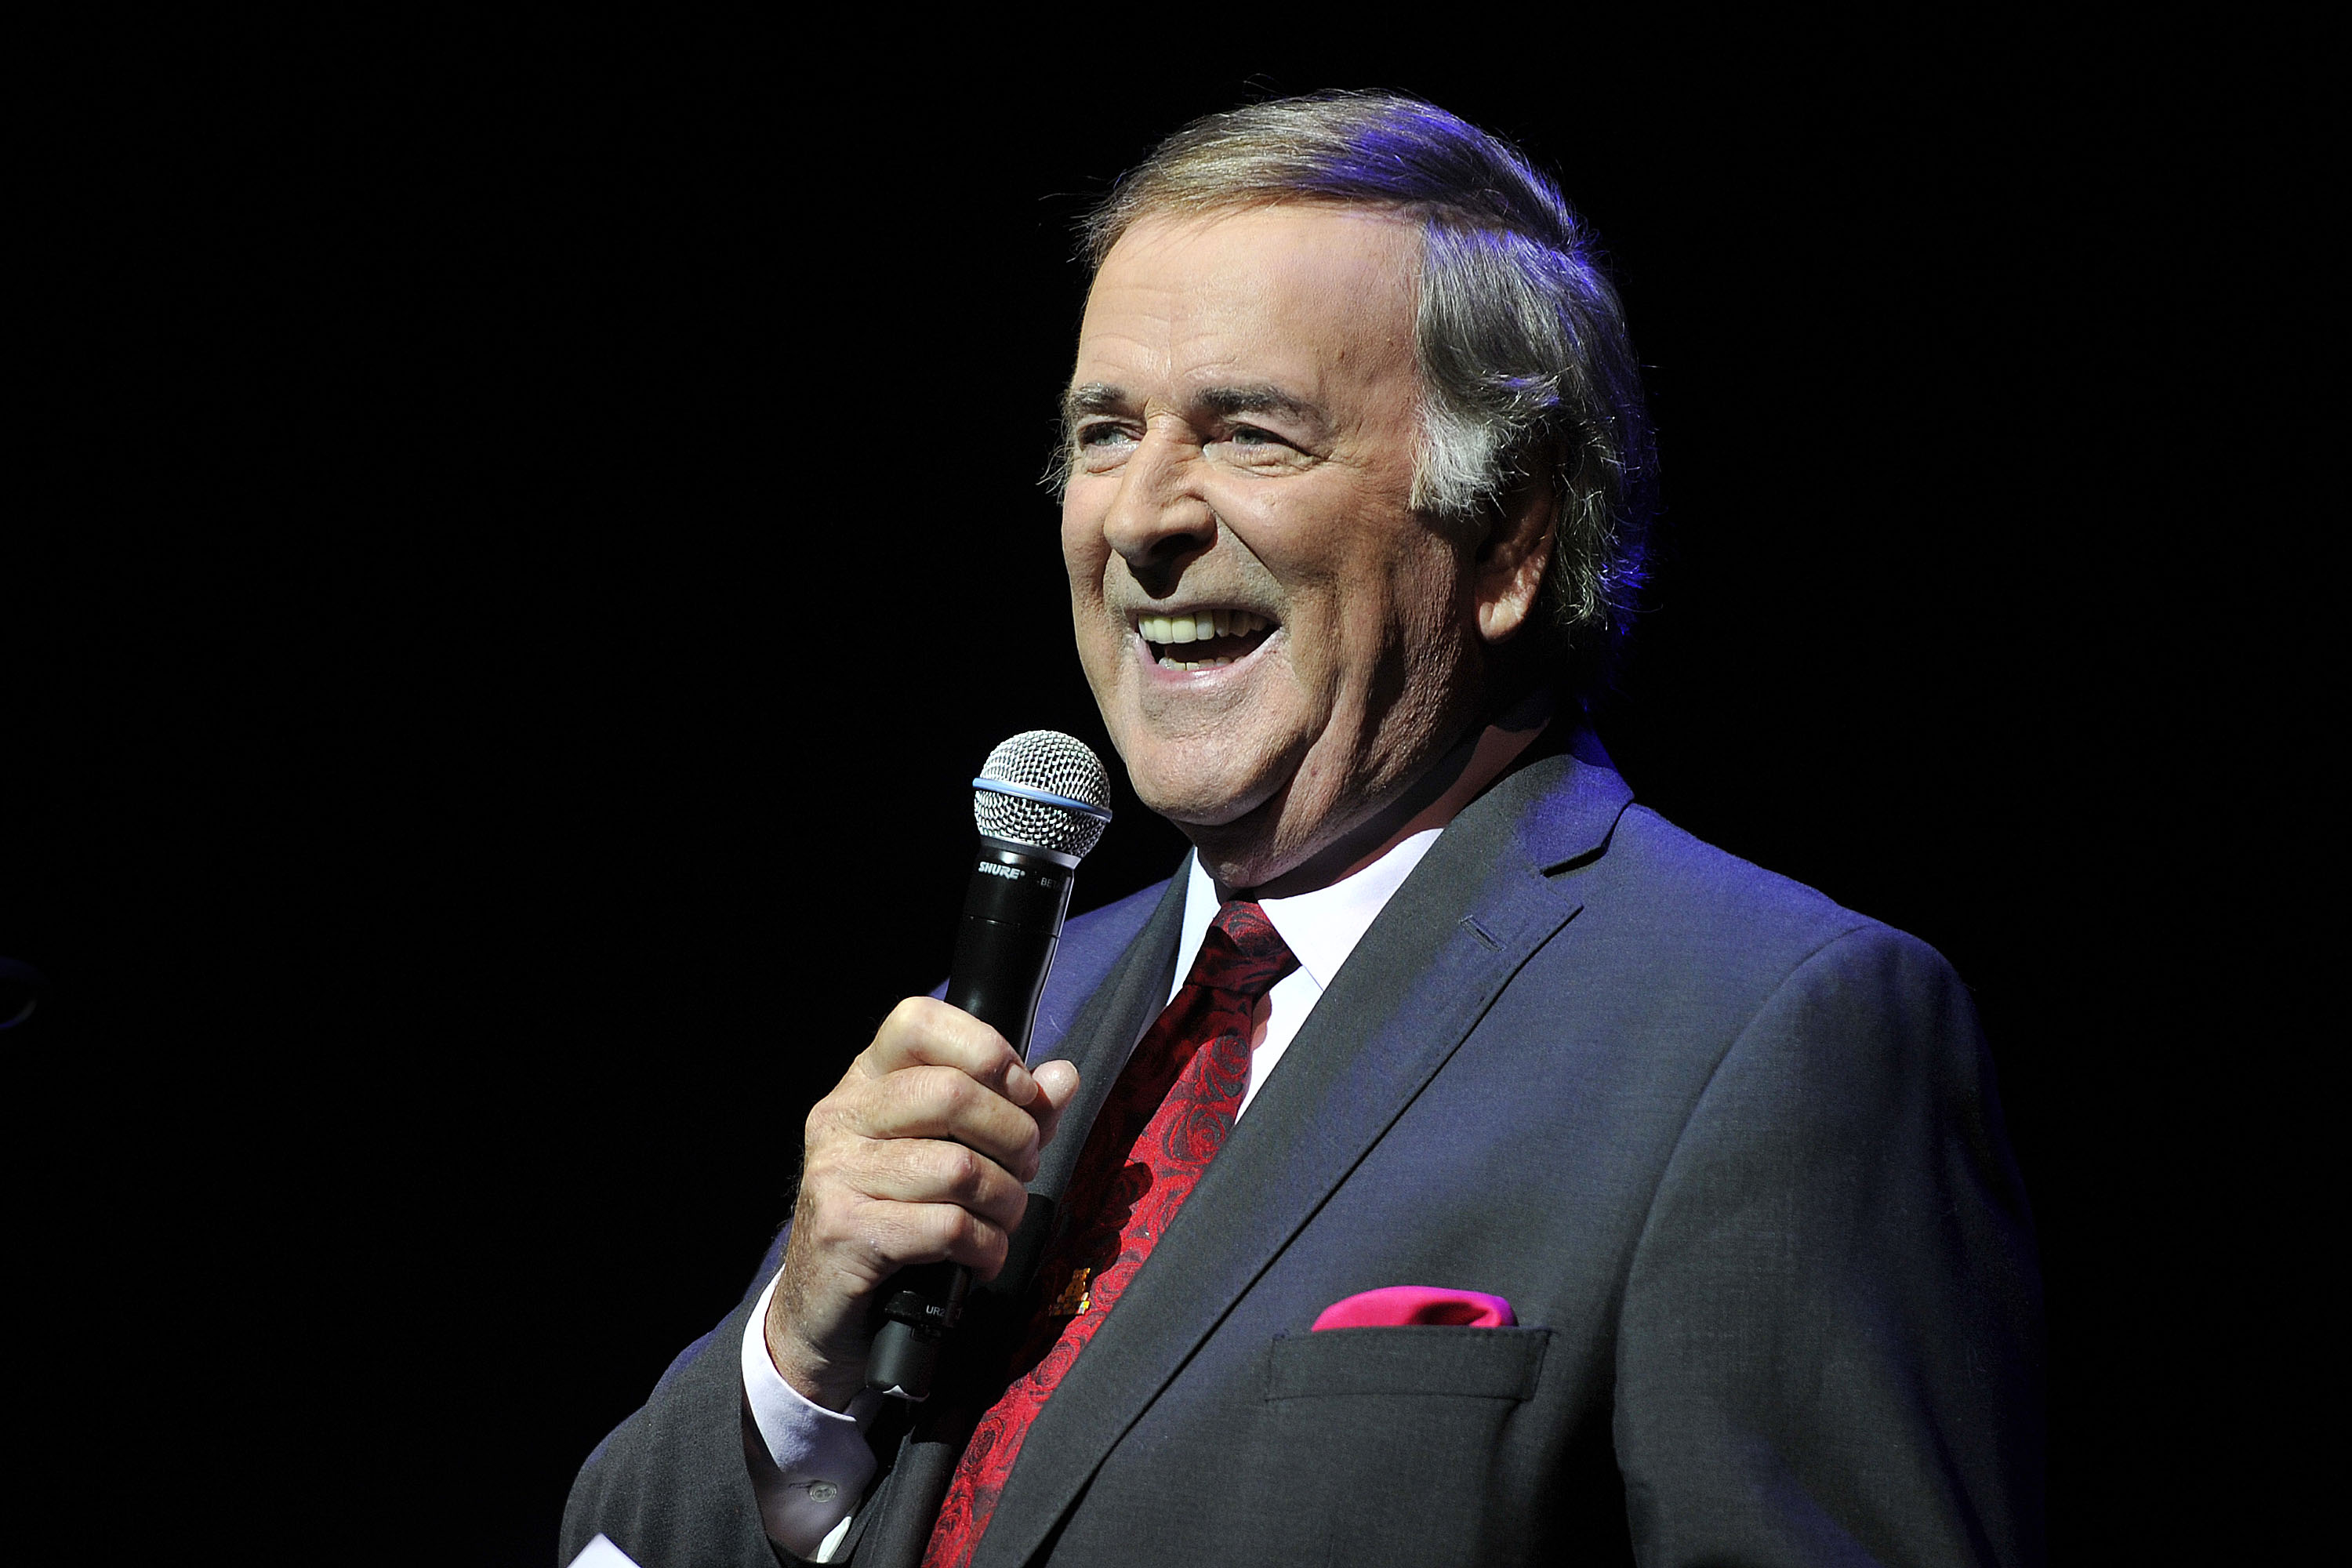 Terry Wogan at Children in Need Concert at The Savoy Theatre on 28th October 2012.  Photographer: Sarah Jeynes. © BBC.